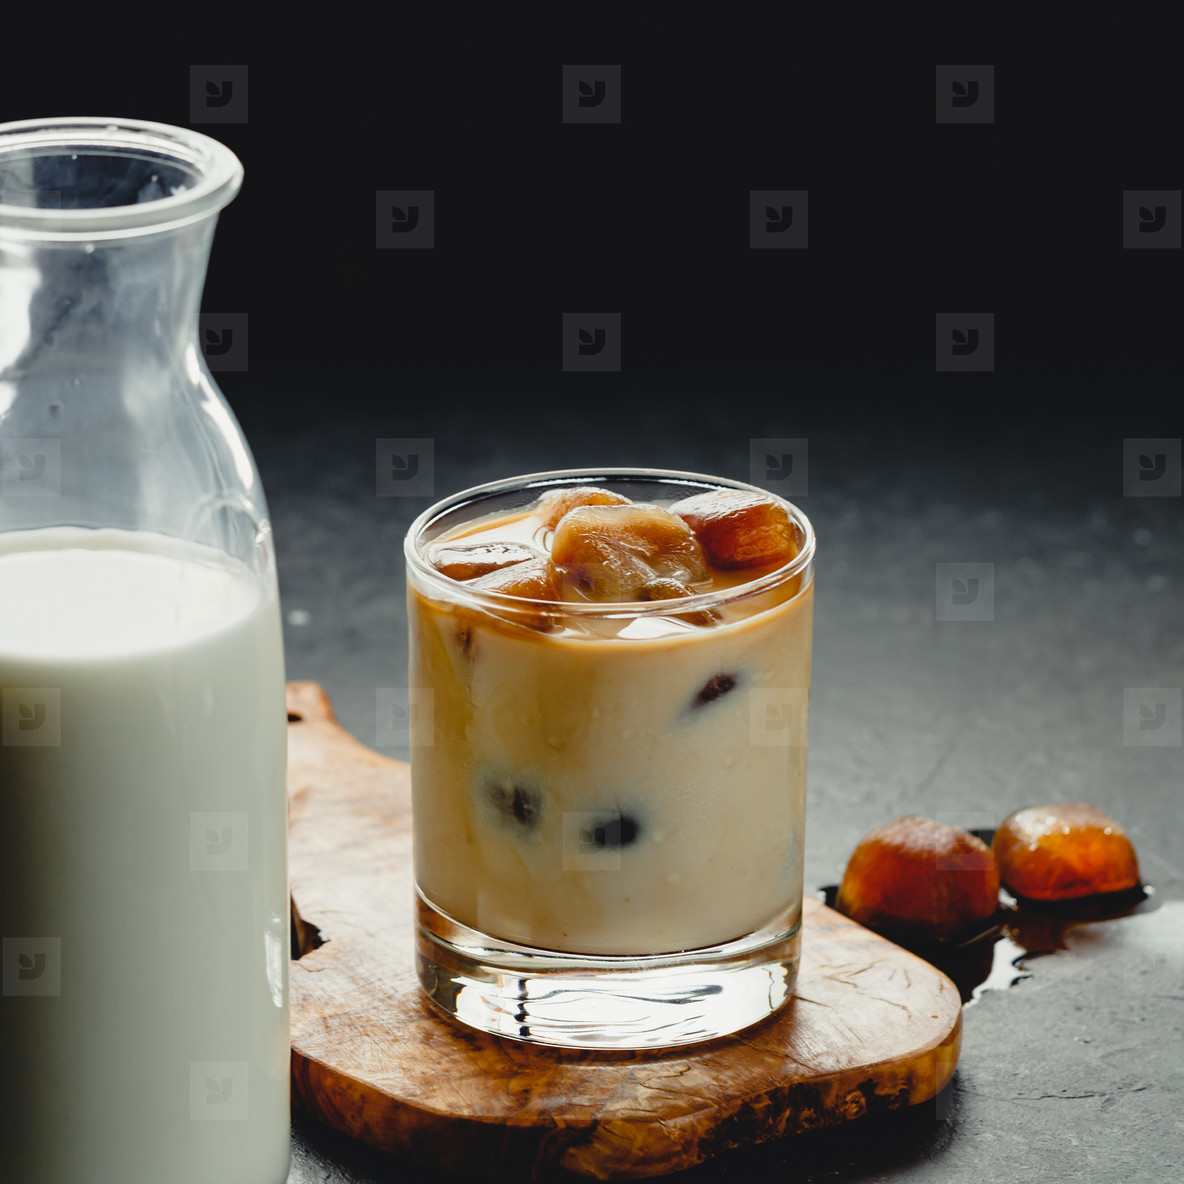 Coffee ice cubes with milk in a glass on a table  Refreshing cold drink